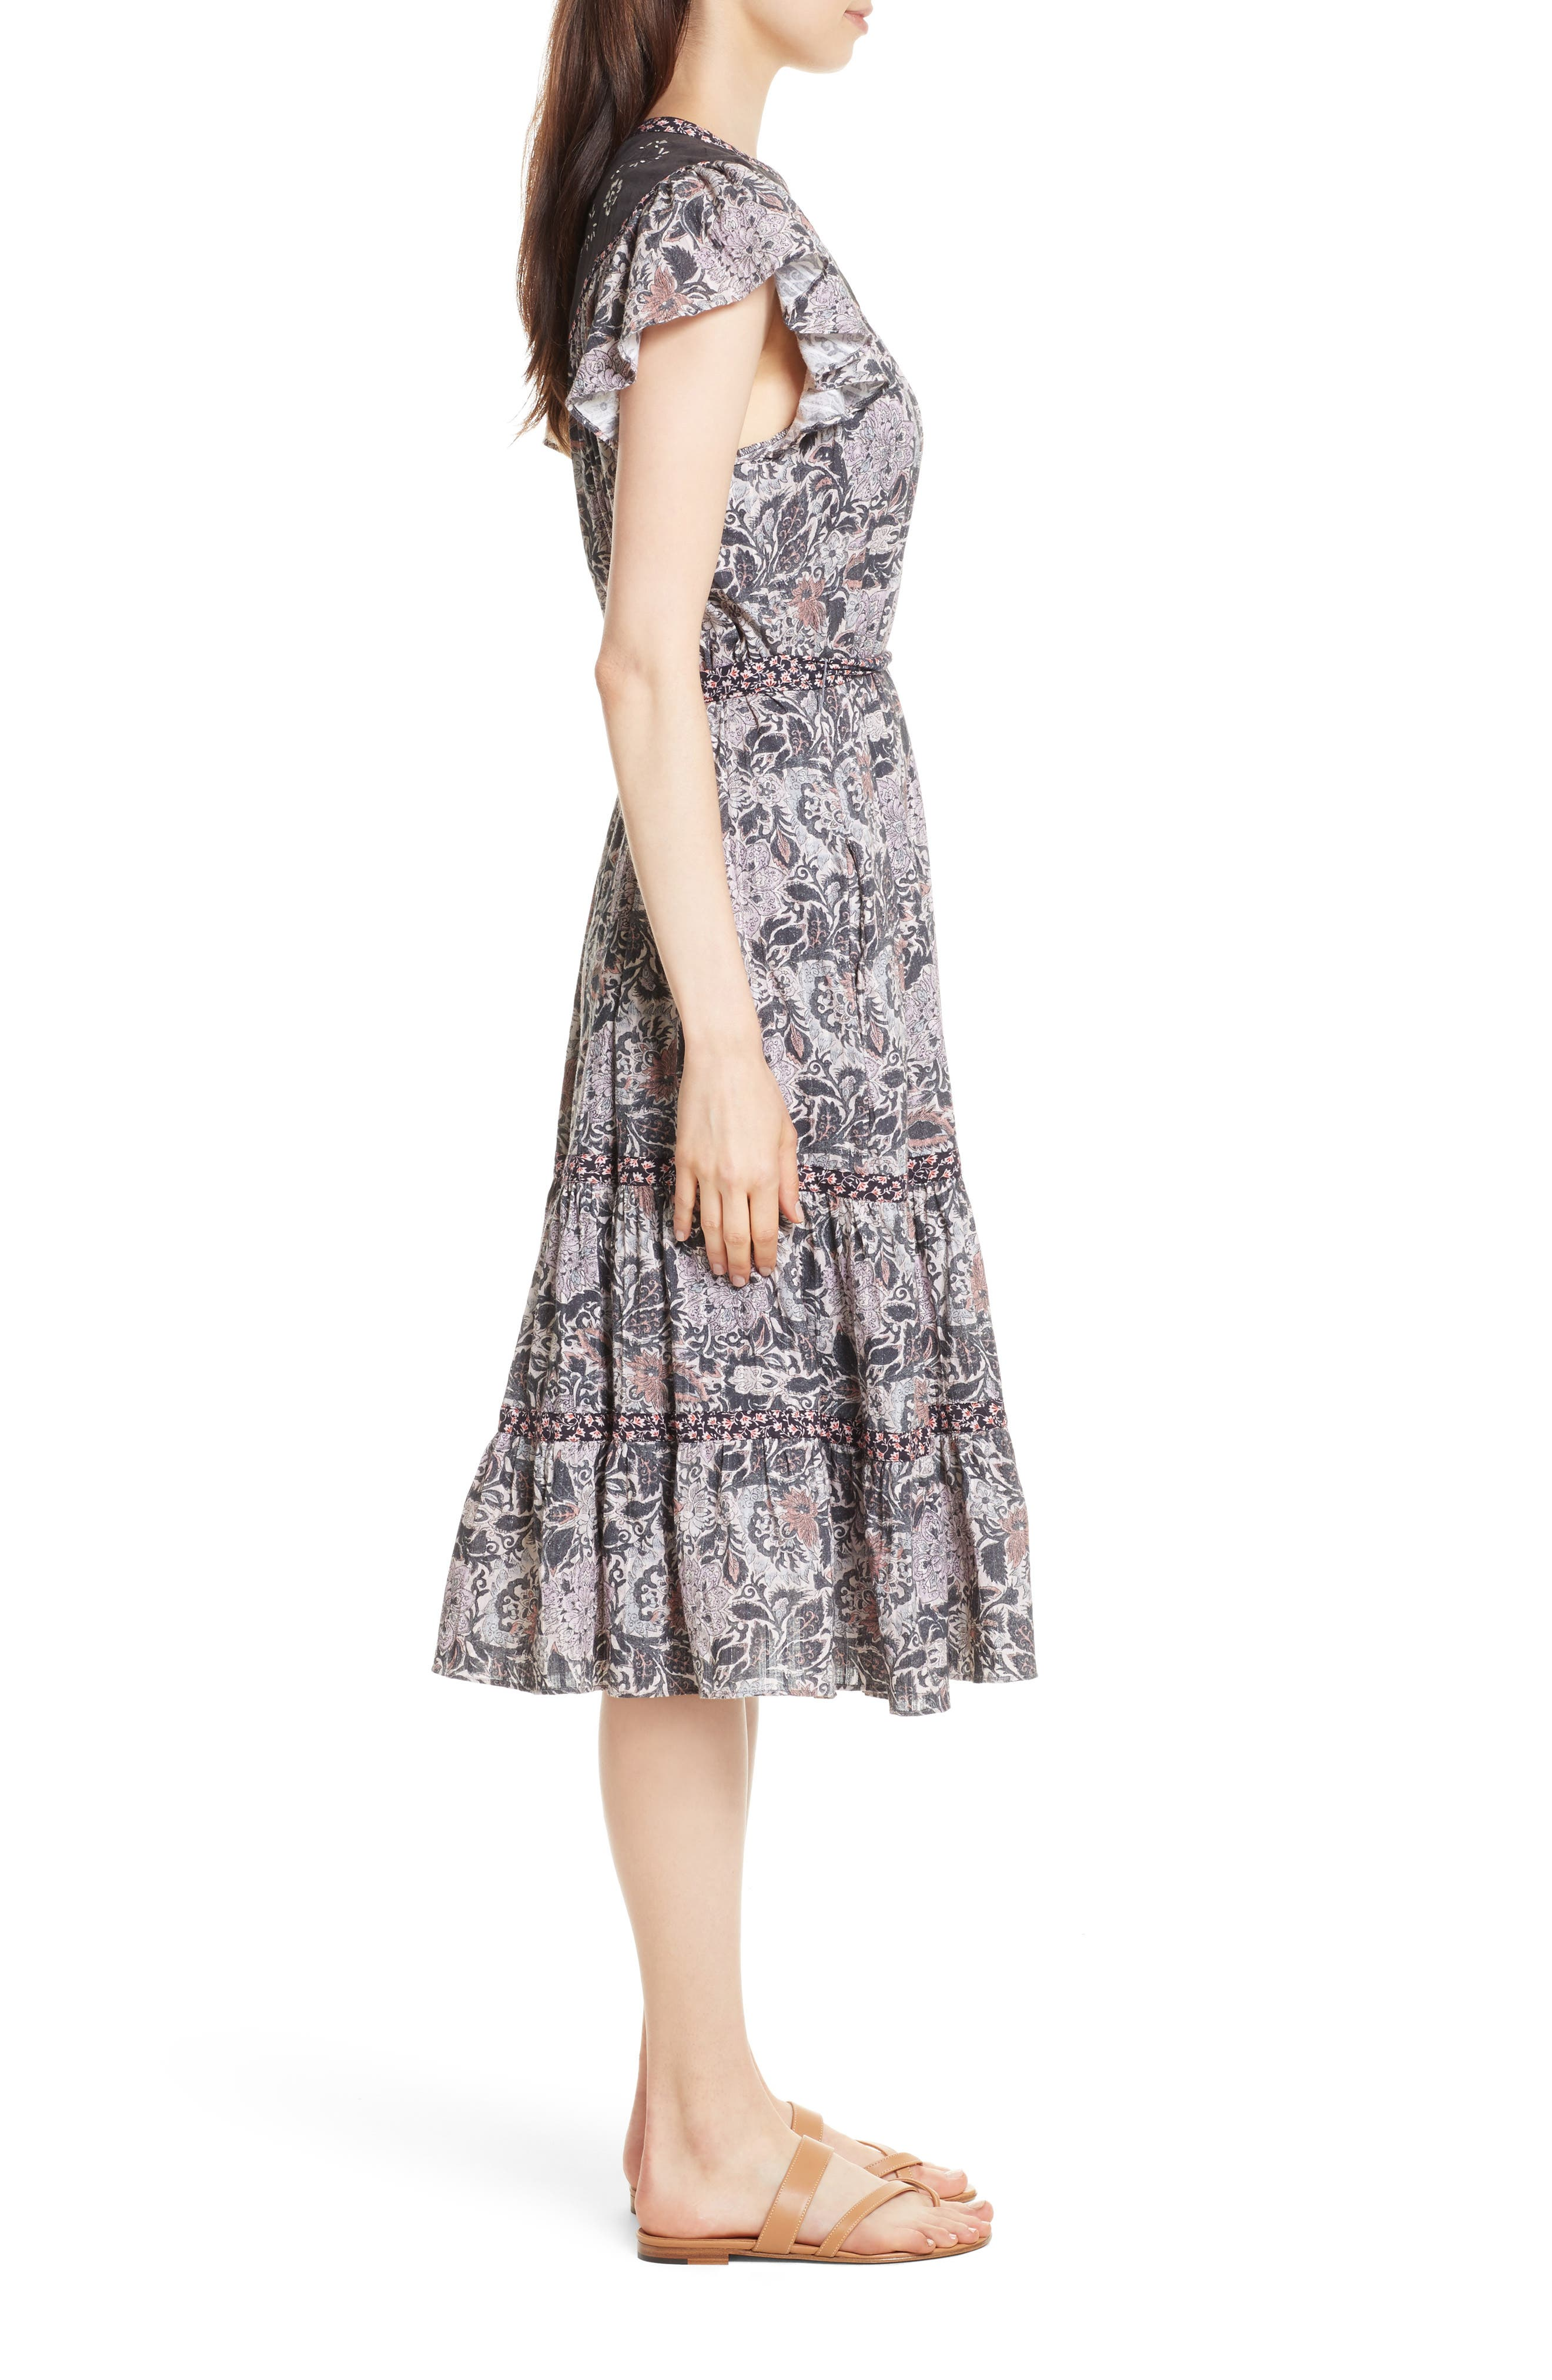 Indochine Embroidered Floral Dress,                             Alternate thumbnail 3, color,                             Washed Black Combo